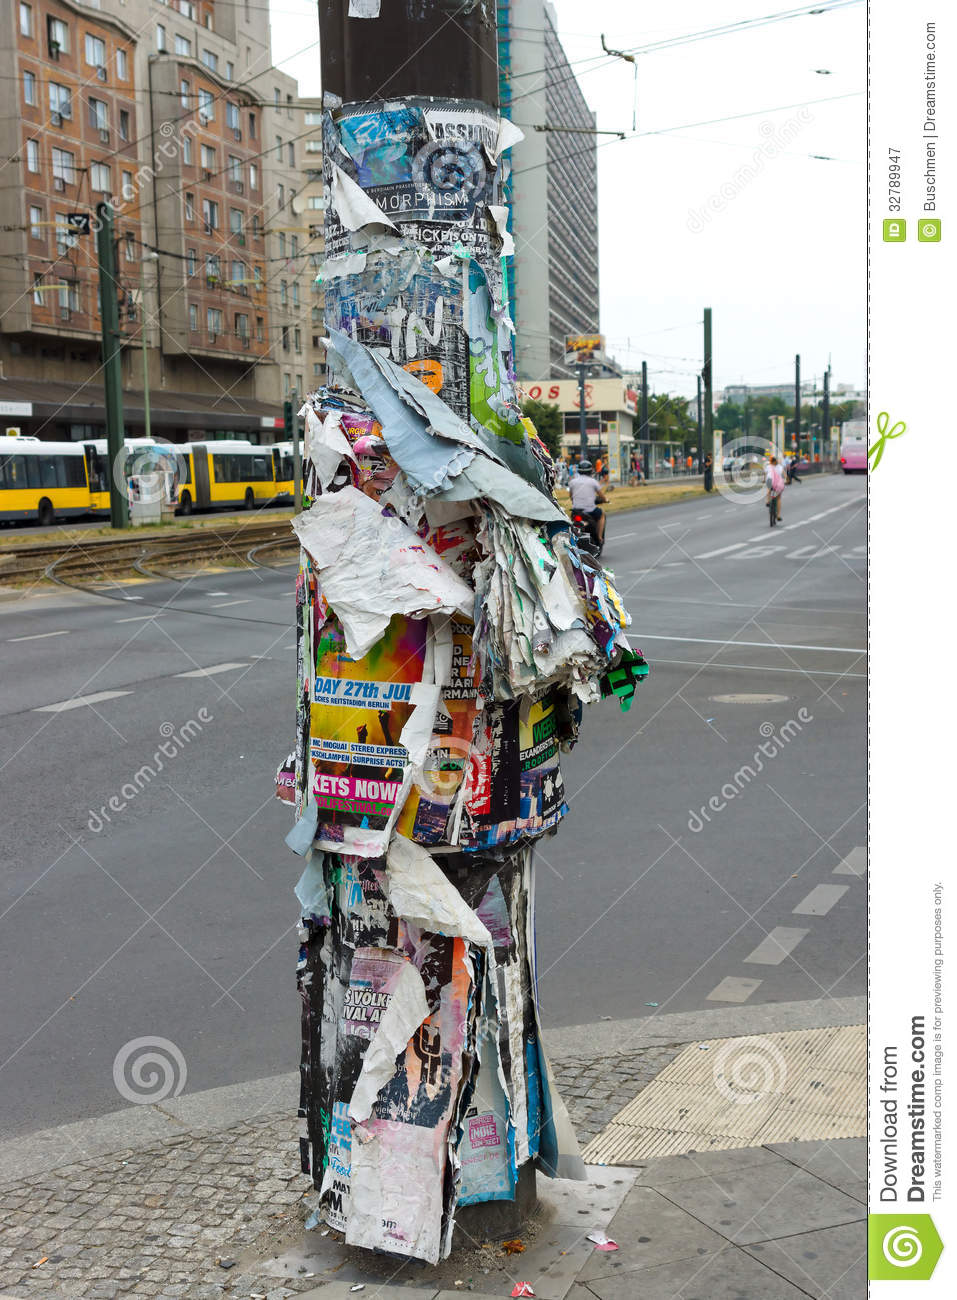 Old Posters On A Street Lamp Post Editorial Photography